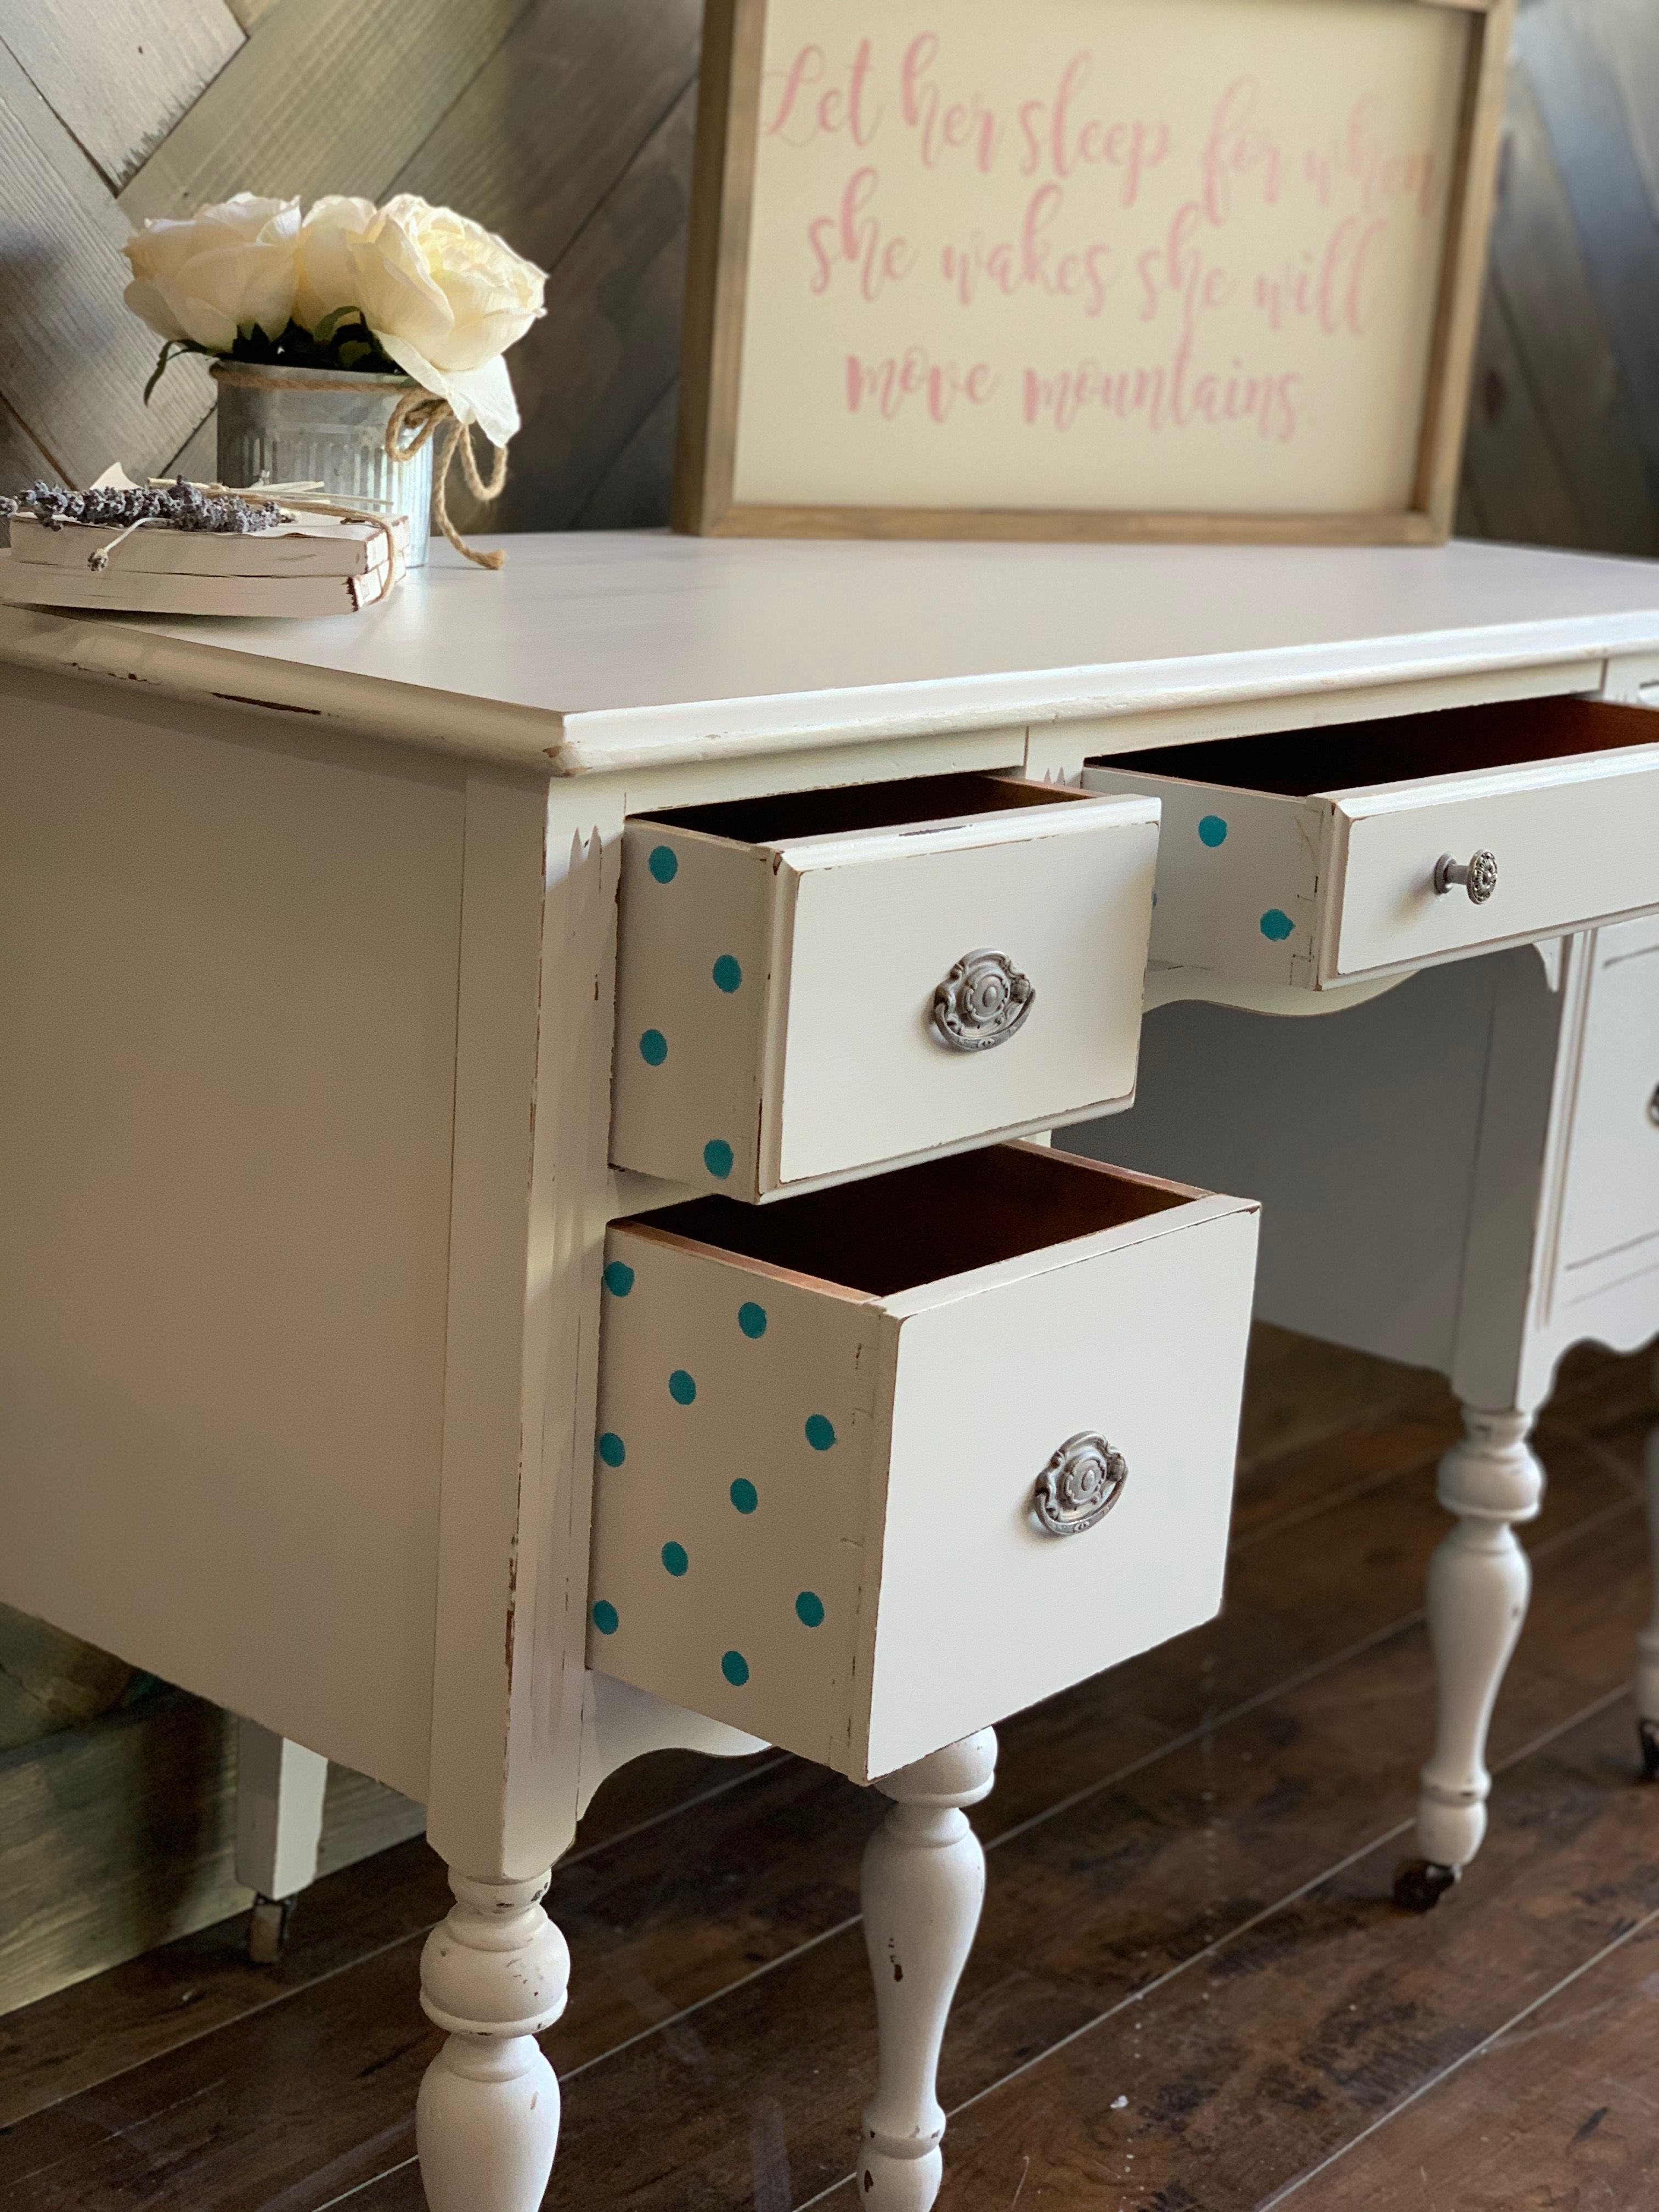 Redesign with Prima Stick and Style Mini Dot on the interior drawers painted with Pure Ocean. Desk painted in Dixie Belle Fluff, distressed and sealed in Satin. #redesignwithprima #dixiebellepaint #dixiebellepaintcompany #dixiebellepaintcompany #furnituremakeover #upcycledfurniture #diyfurnitureupcycle #farmhousestyle #farmhousedecorideas #vintagefurniture #vintagefurnituremakeover #furnitureartist #vintagefurnituremakeover #farmhousechic #boutiqueshopping